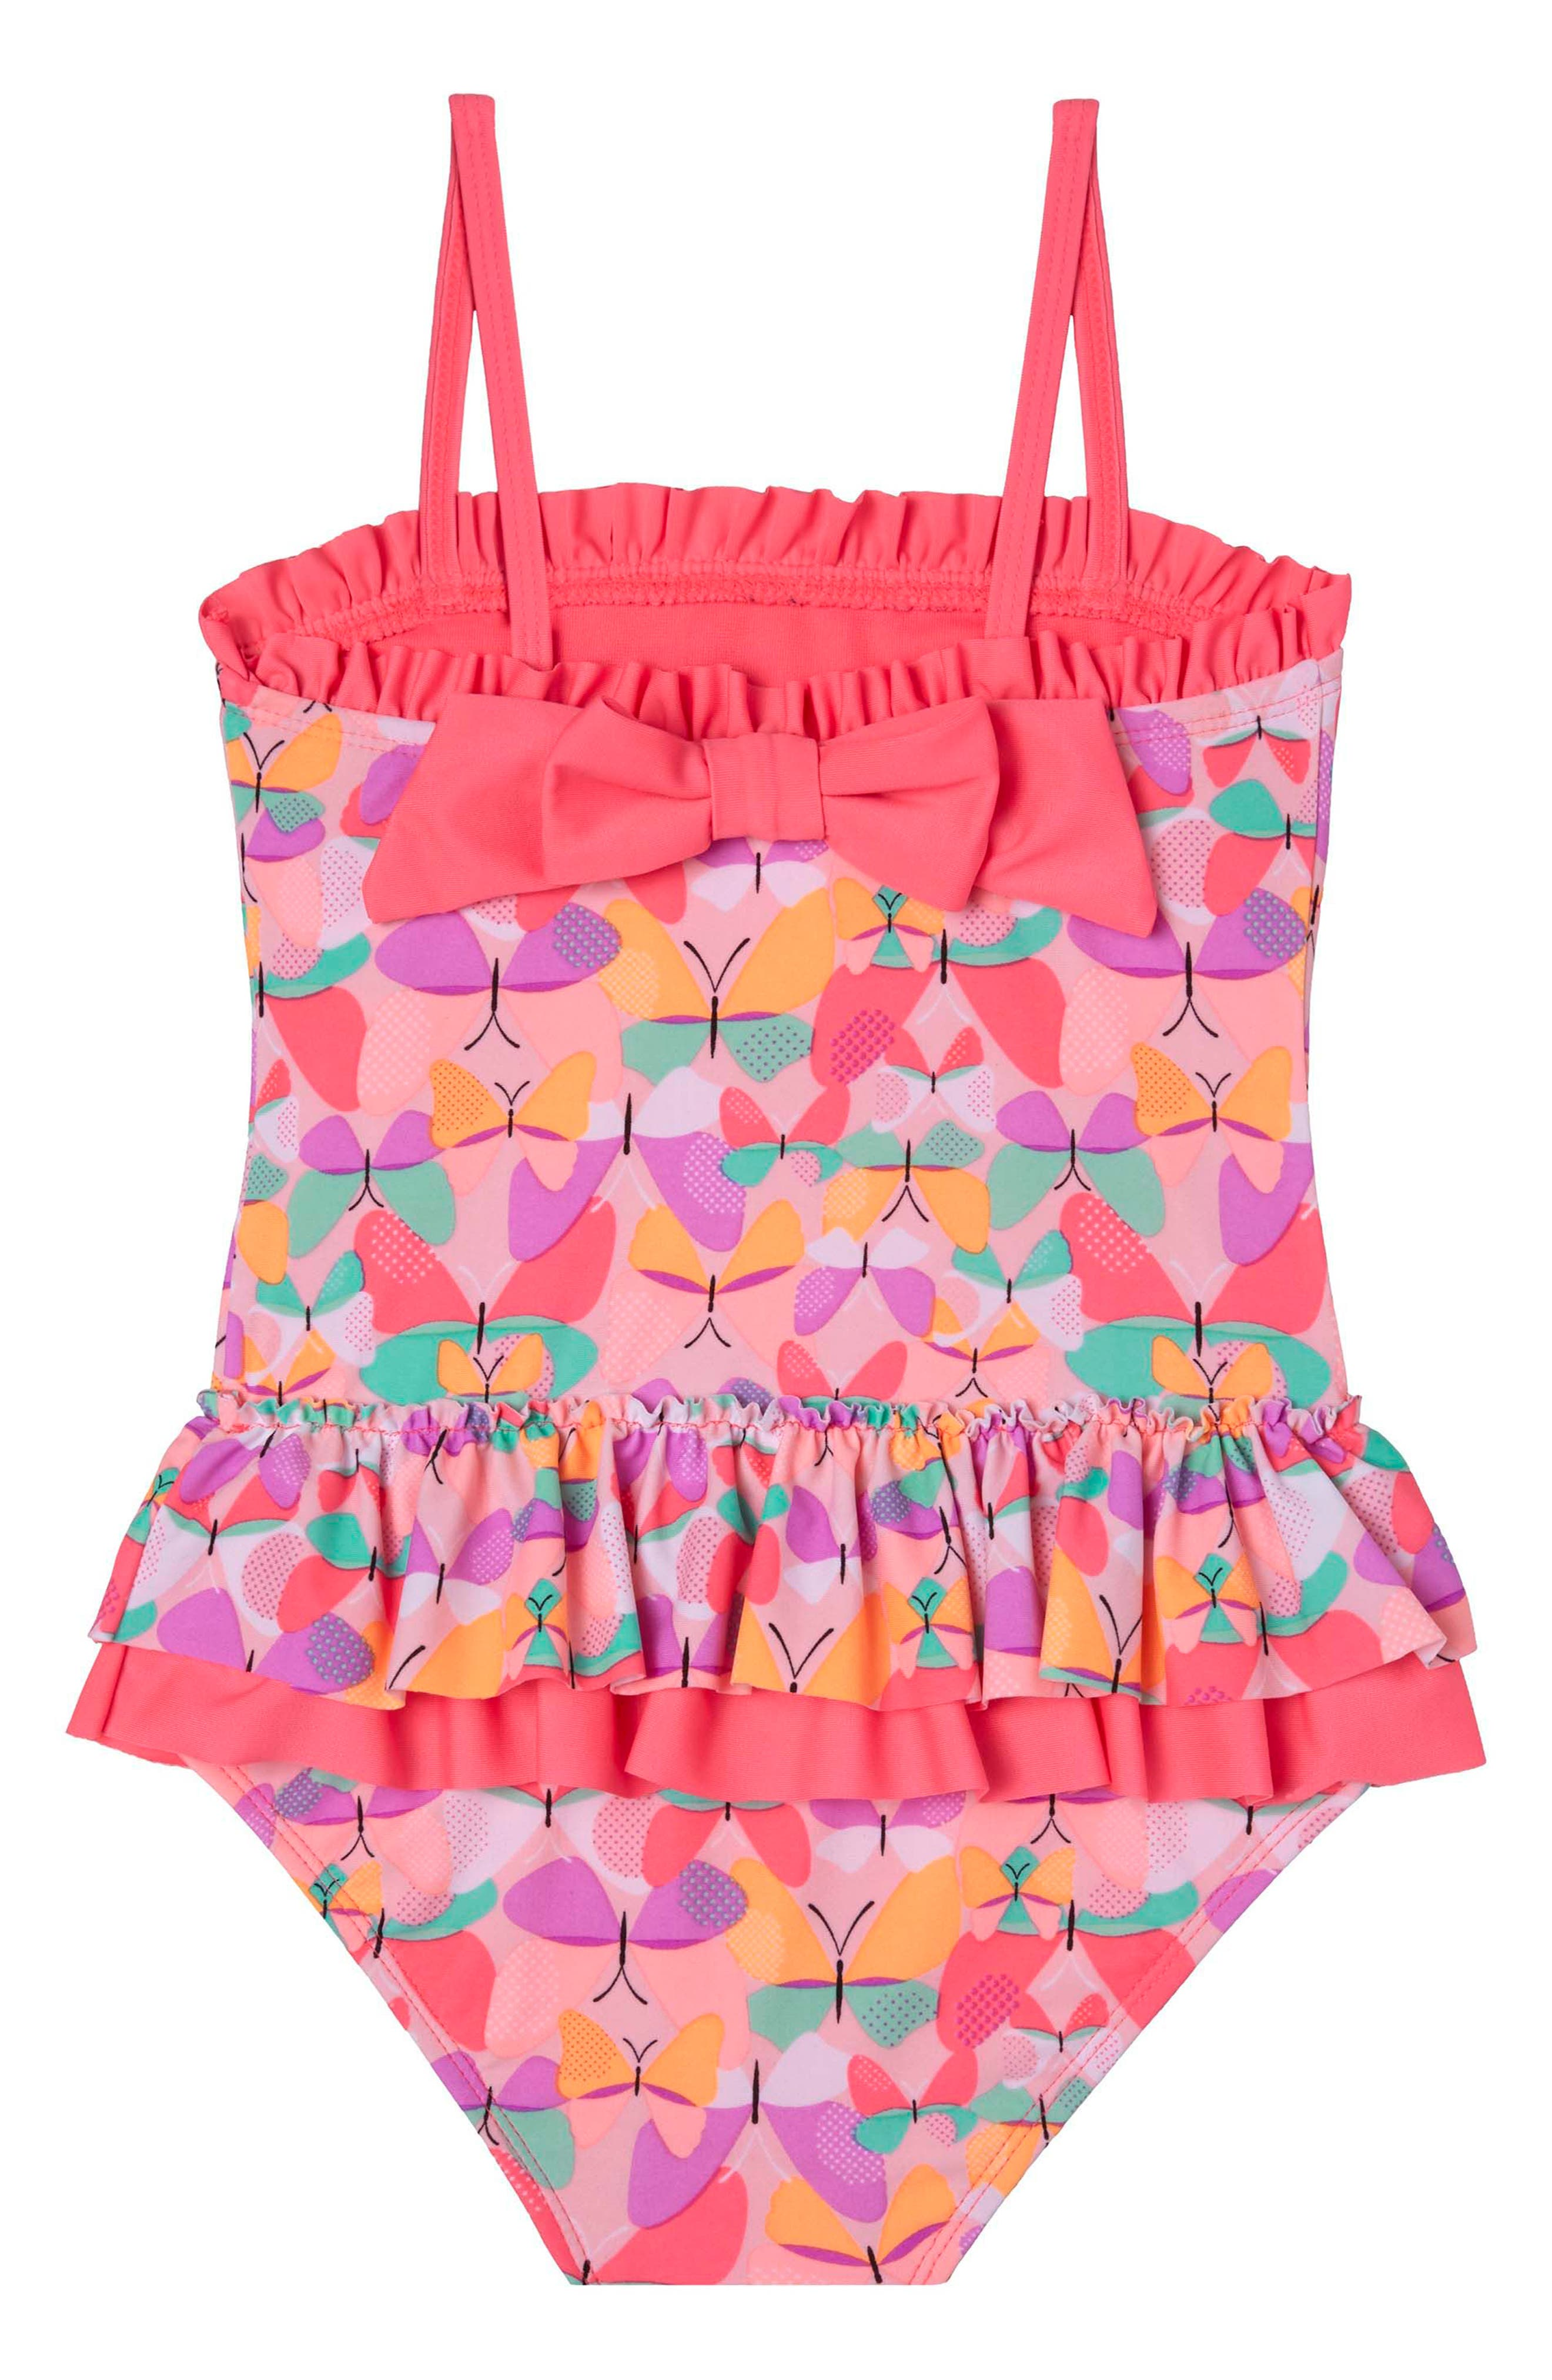 Butterfly Cutie One-Piece Swimsuit,                             Main thumbnail 1, color,                             651